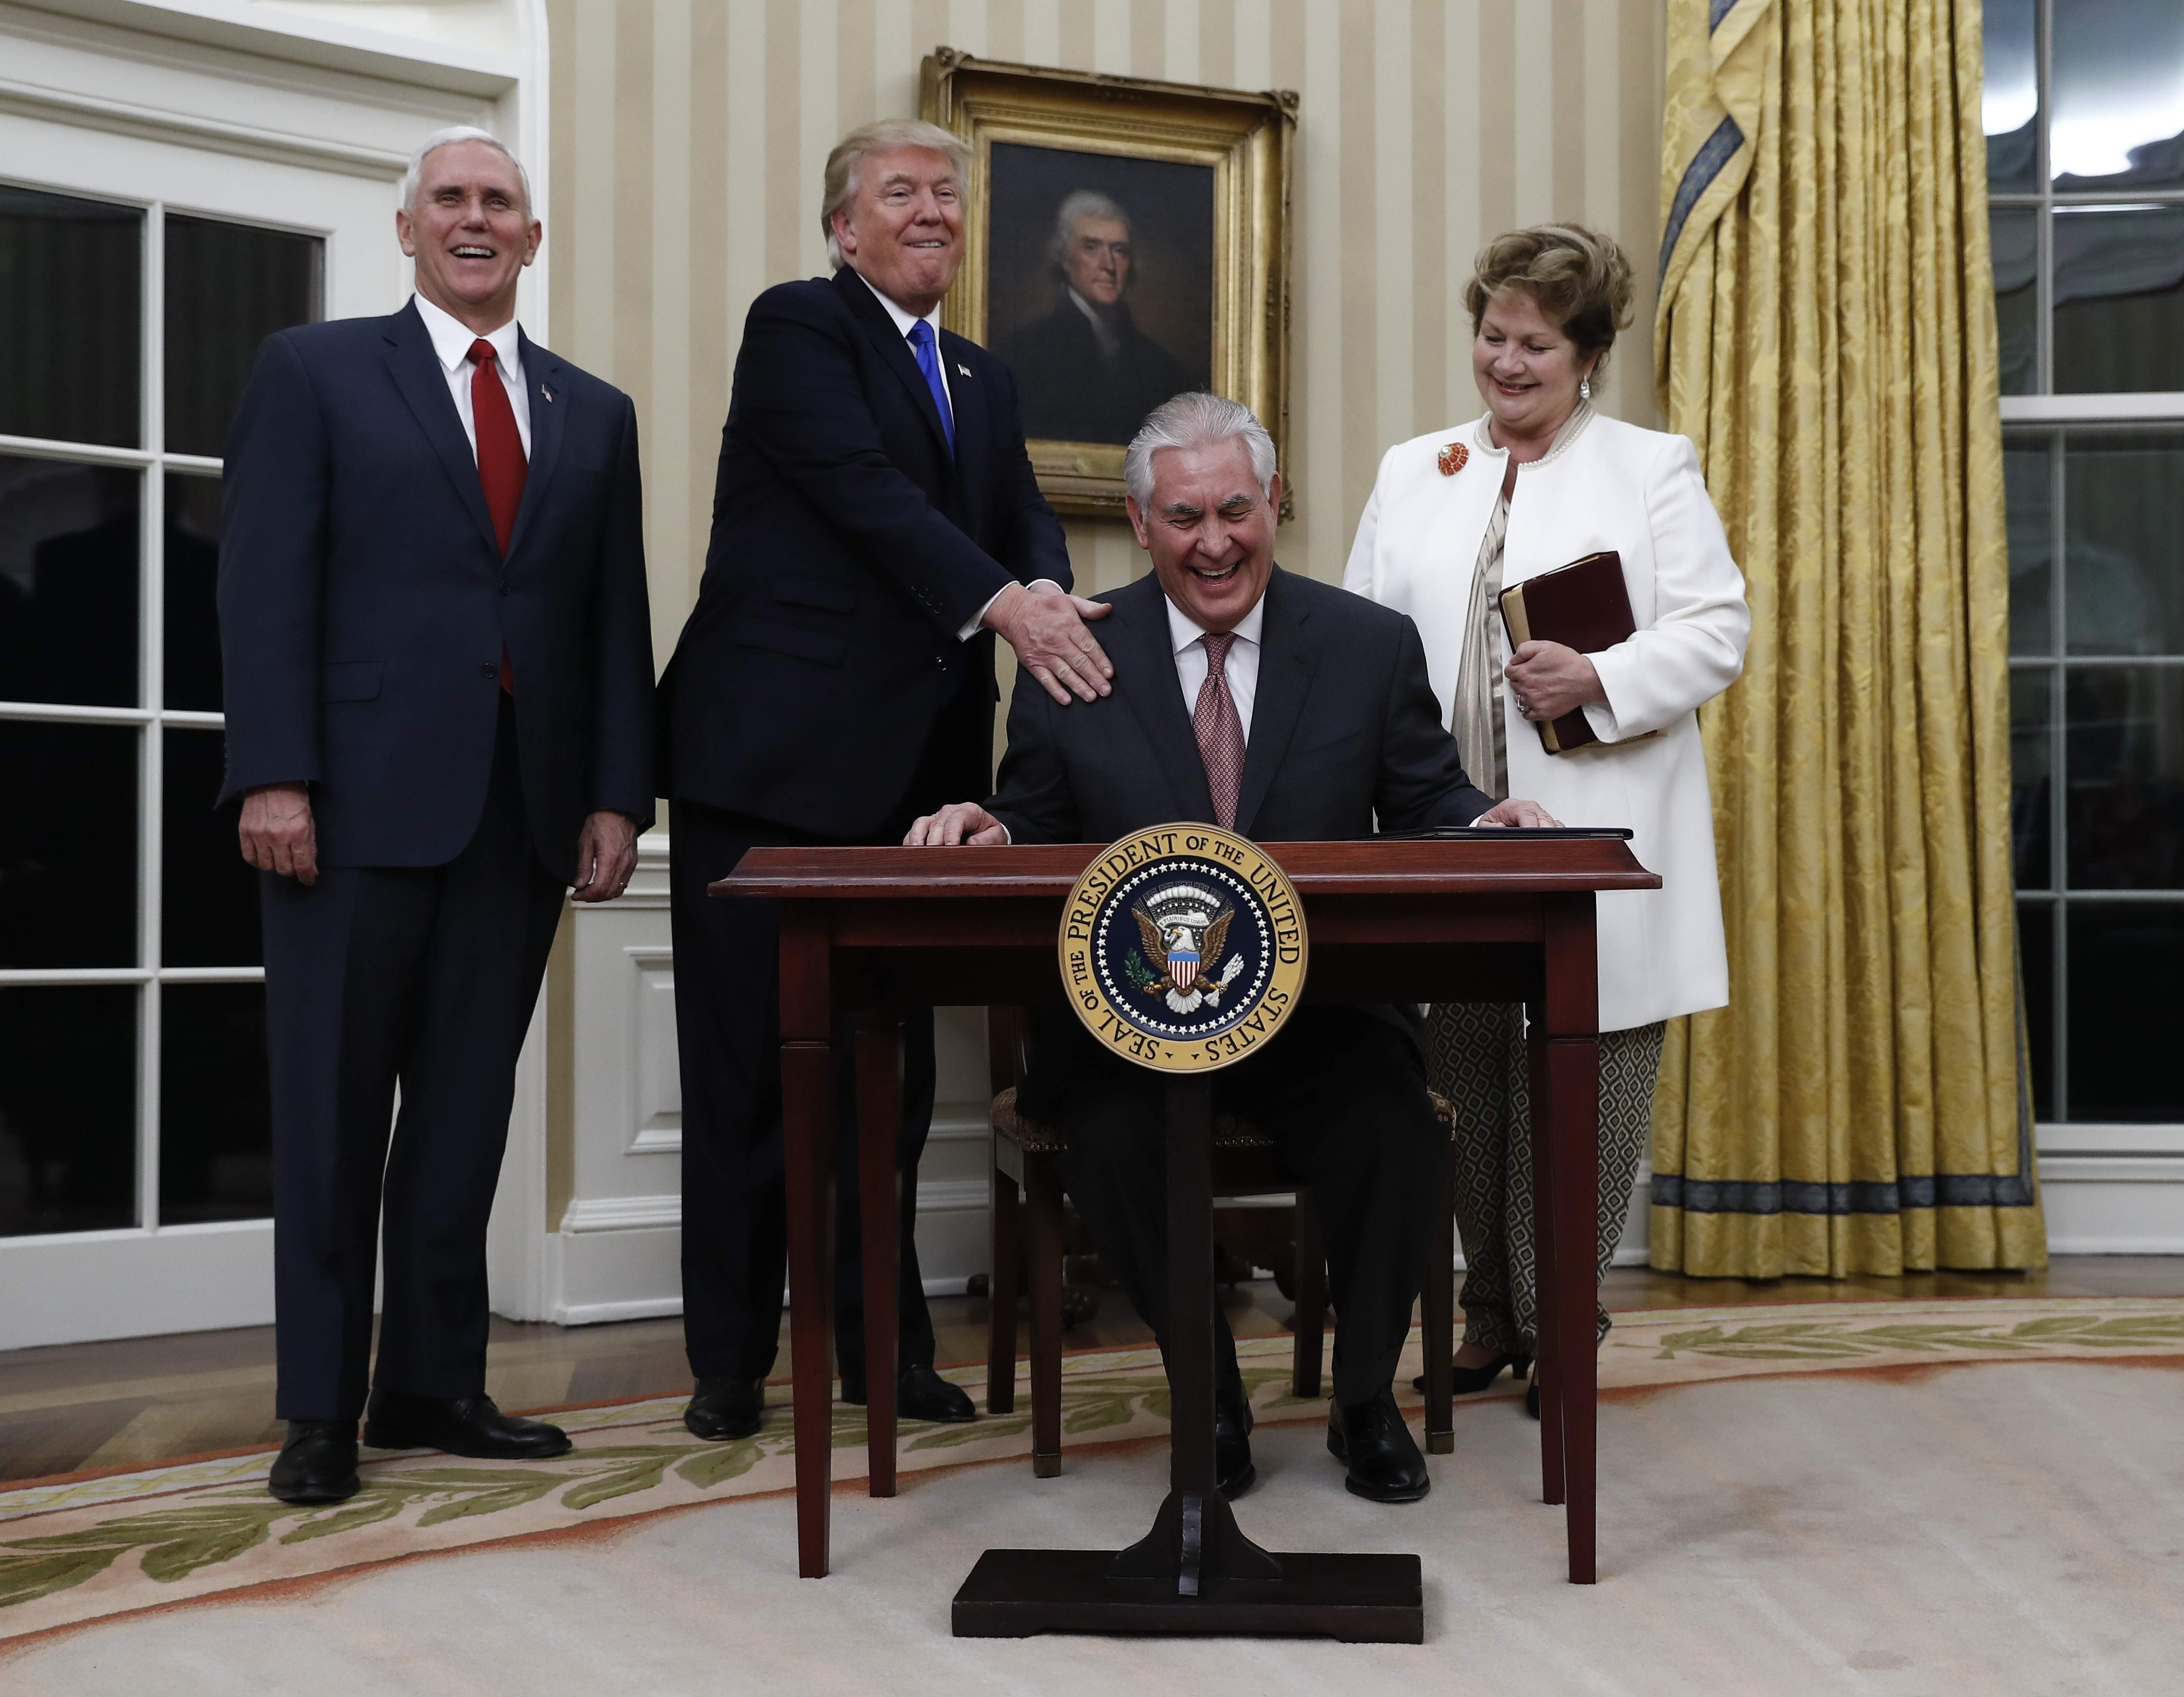 DAY 13 - In this Feb. 1, 2017, file photo, Secretary of State Rex Tillerson, joined by President Donald Trump, Vice President Mike Pence and his wife Renda St. Clair, laughs after signing the Appointment Affidavit after being sworn in as Secretary of State in the Oval Office of the White House in Washington. (AP Photo/Carolyn Kaster, File)